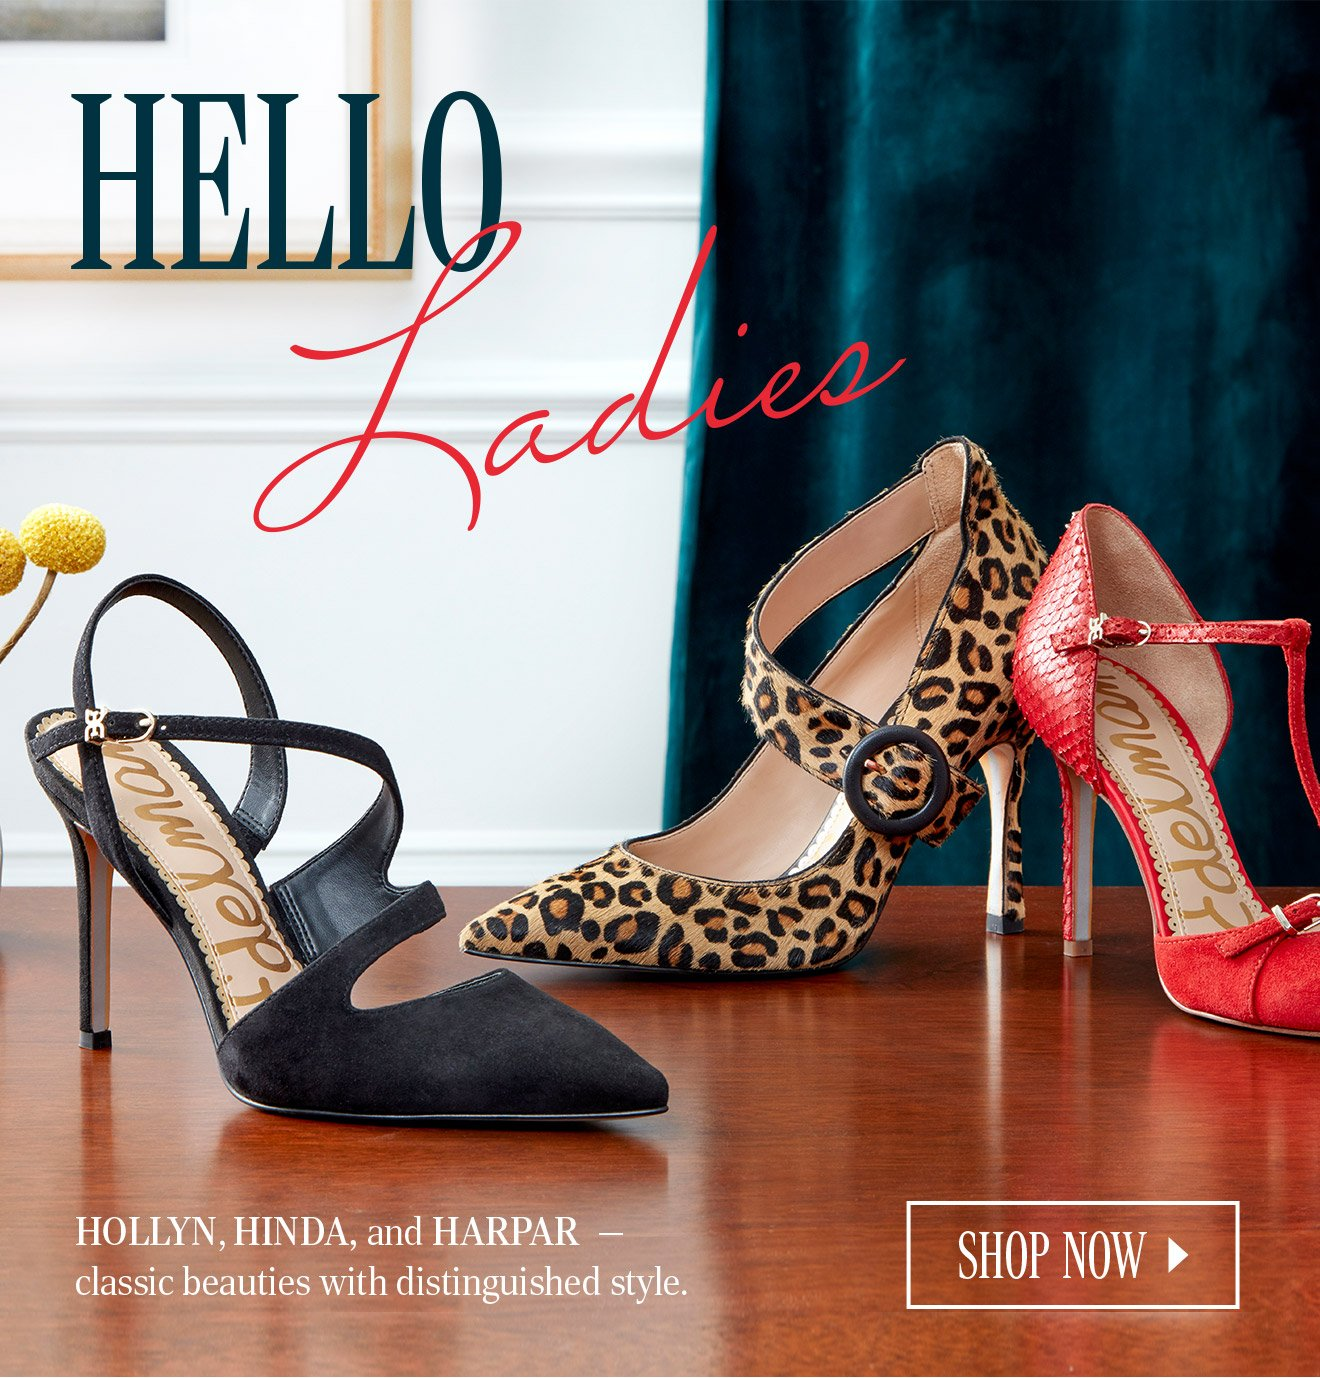 HELLO LADIES. HOLLYN, HINDA, and HARPAR  - classic beauties with distinguished style. SHOP NOW.